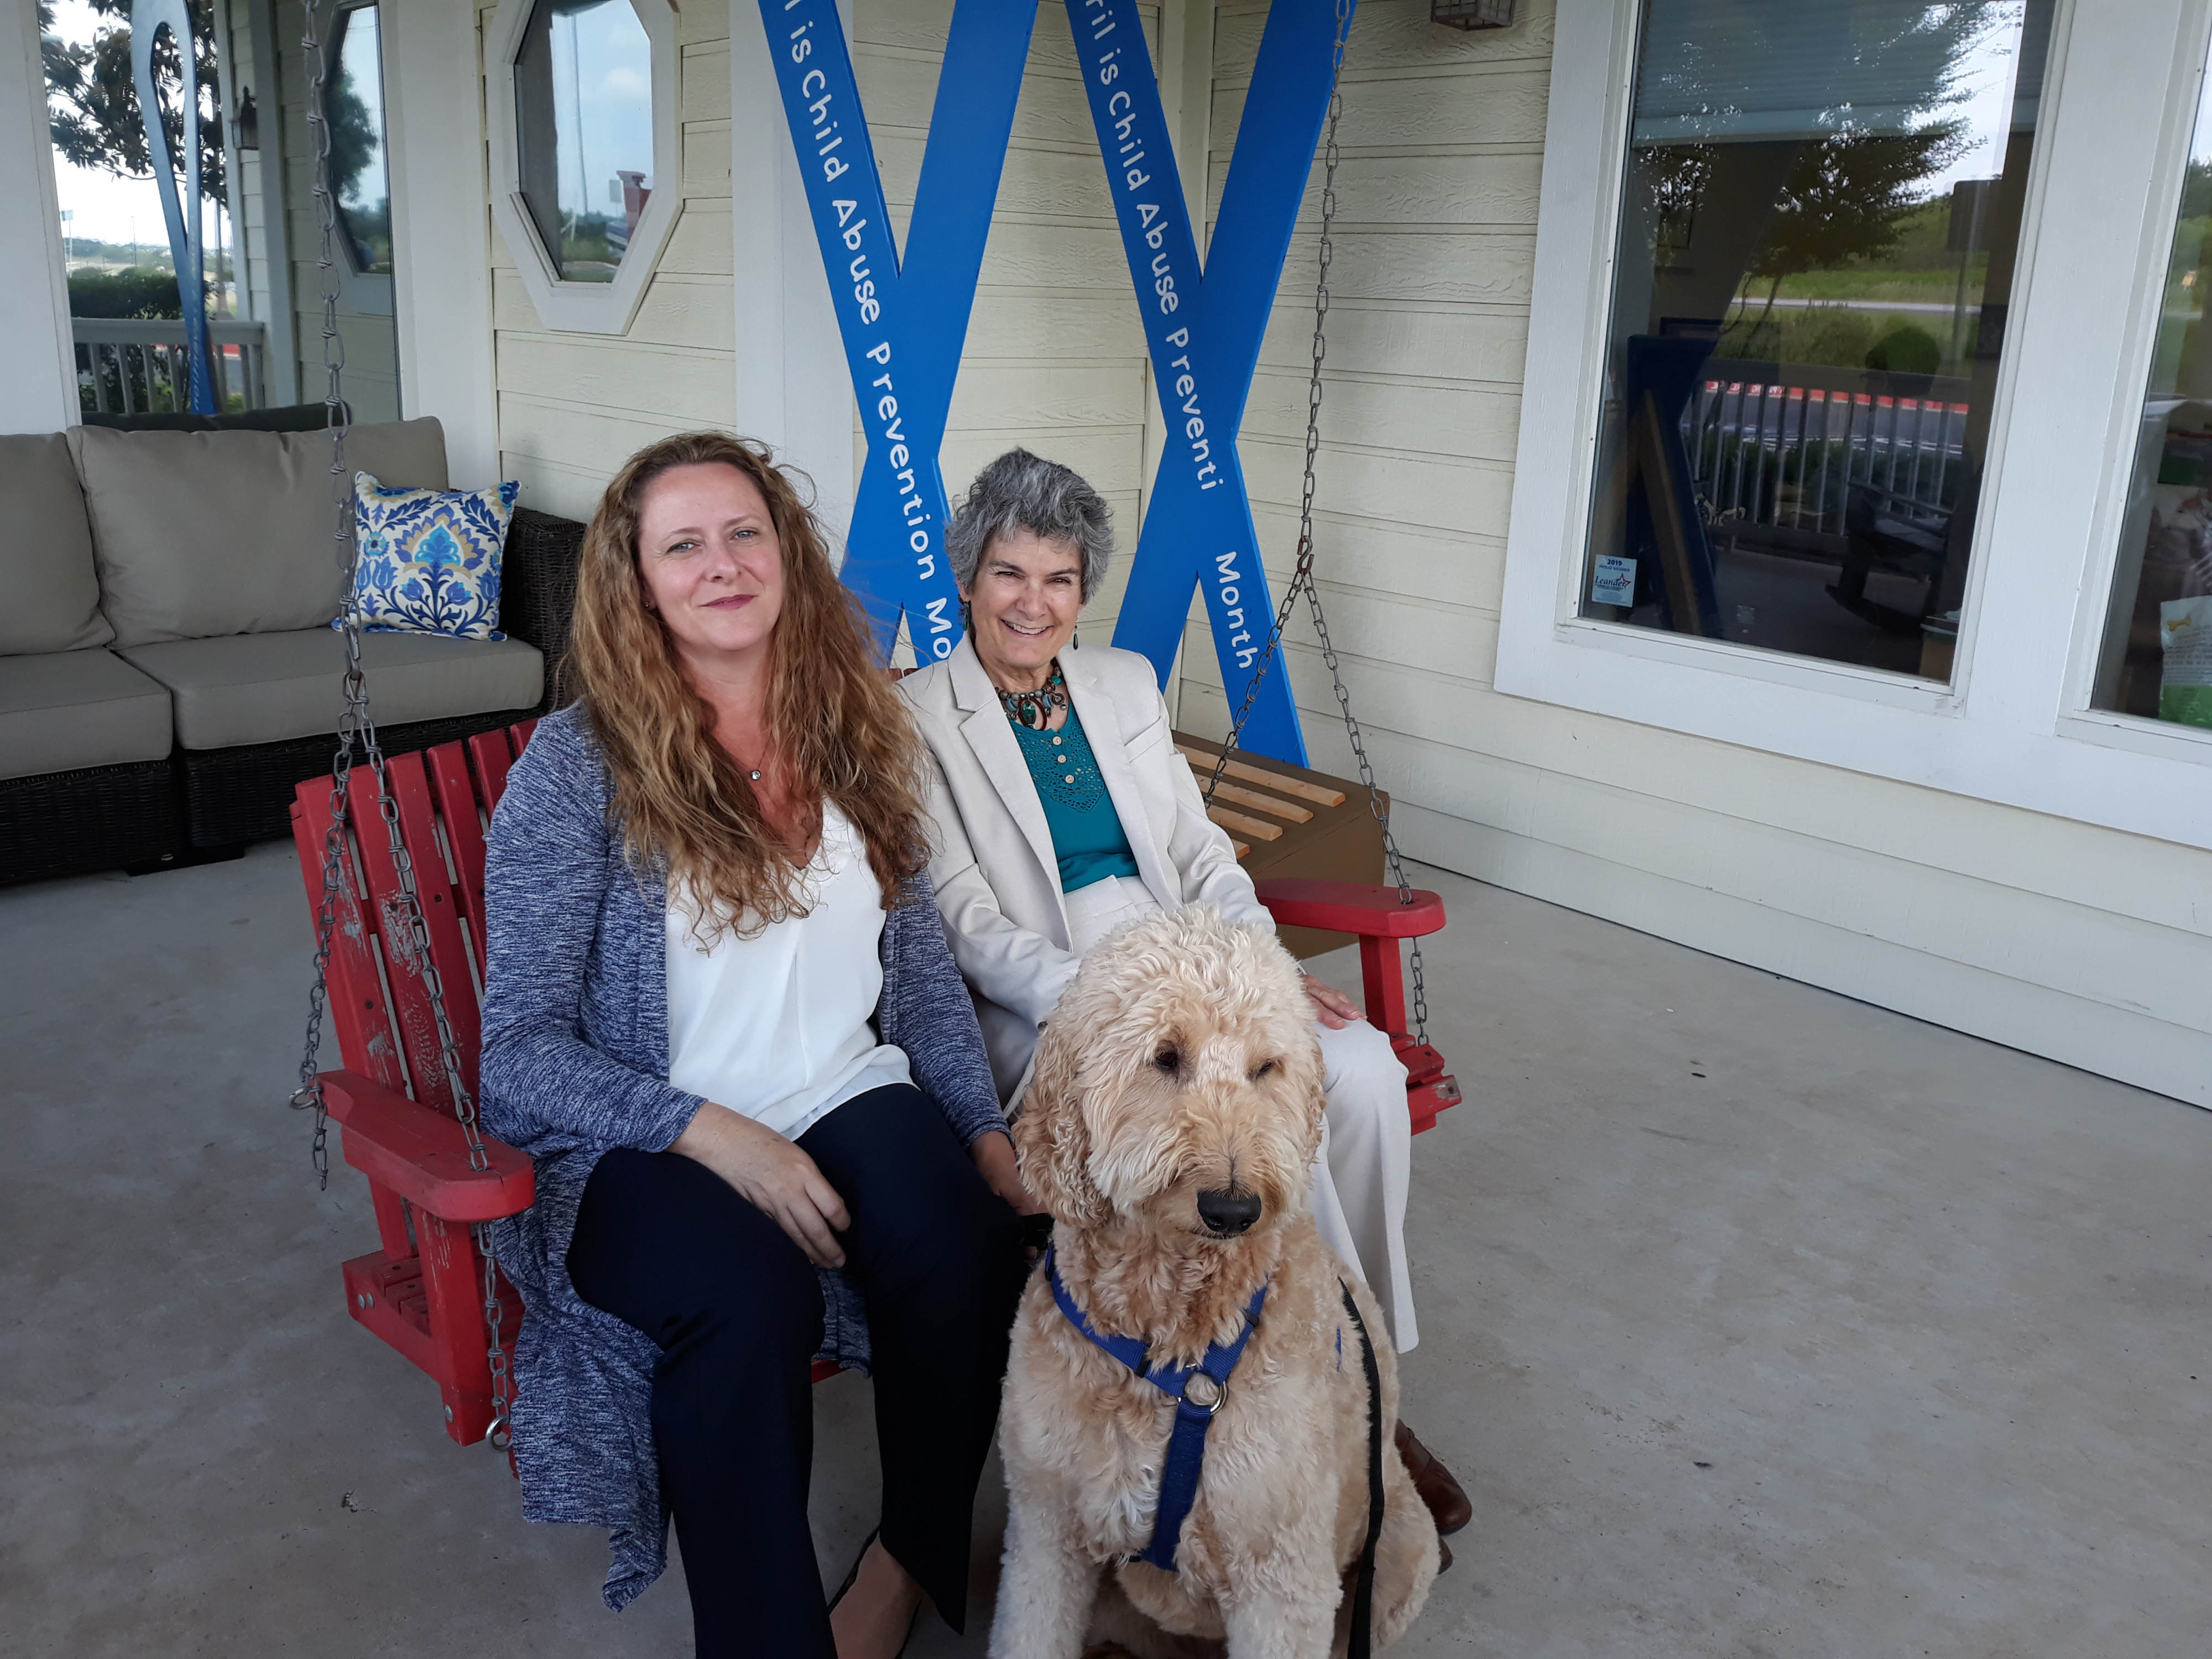 Commissioner Cook visits with CEO Kerrie Stannell on the proch of the Williamson County Children's Advocacy Center in Georgetown. They are joined by Charlie, the Golden Doodle, who calms the children with his peaceful and affectionate nature.